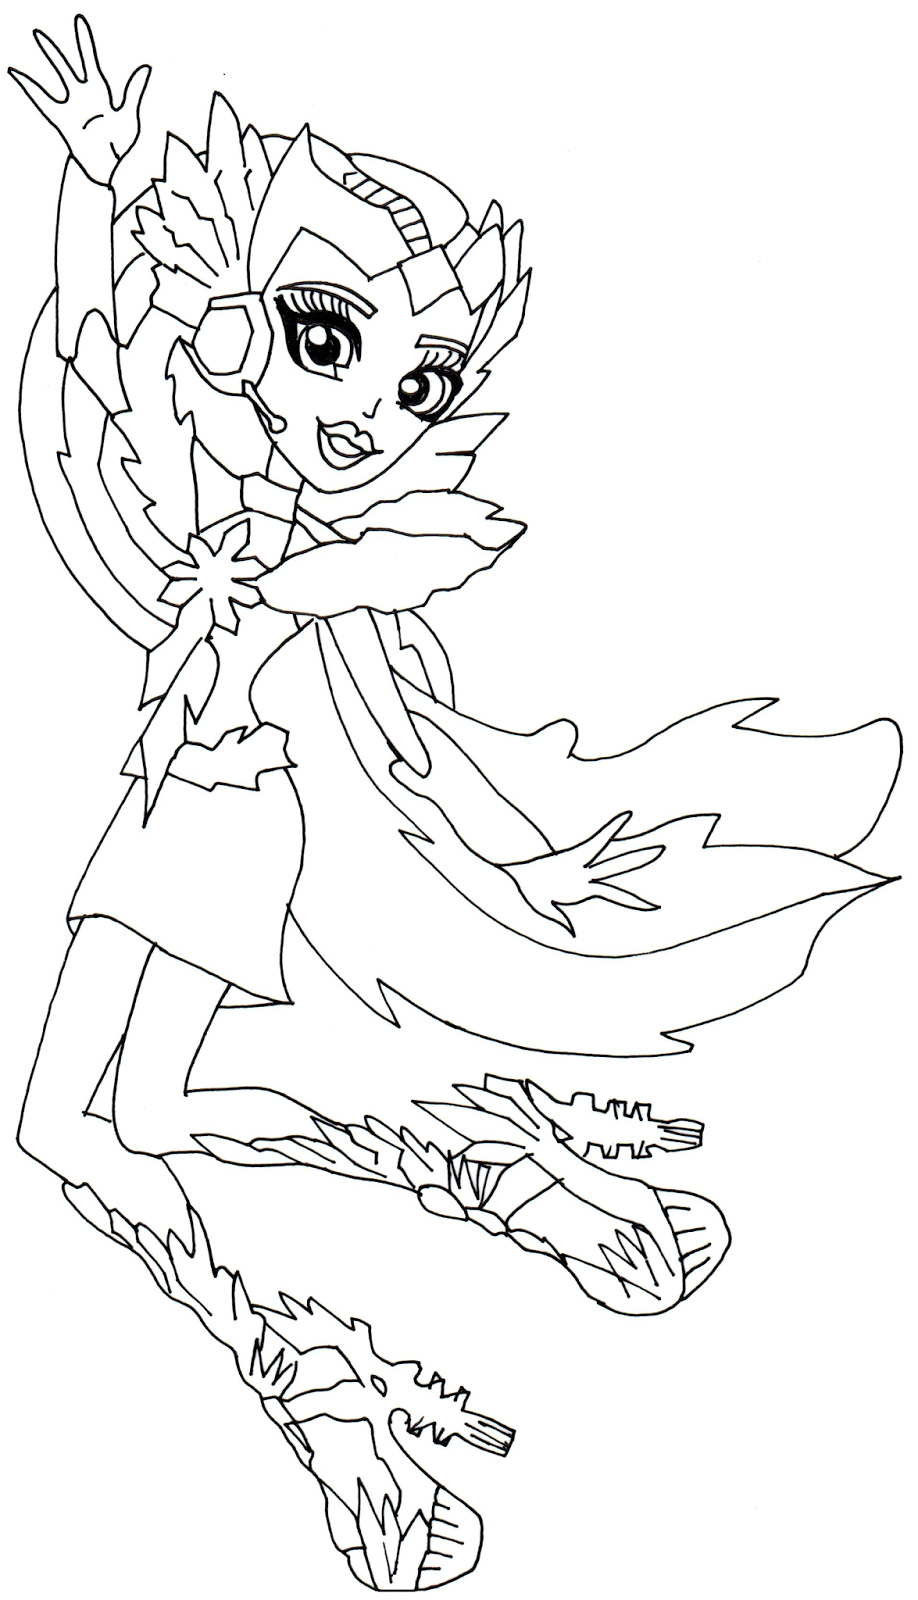 Free printable monster high coloring pages astranova for Monster high color pages free